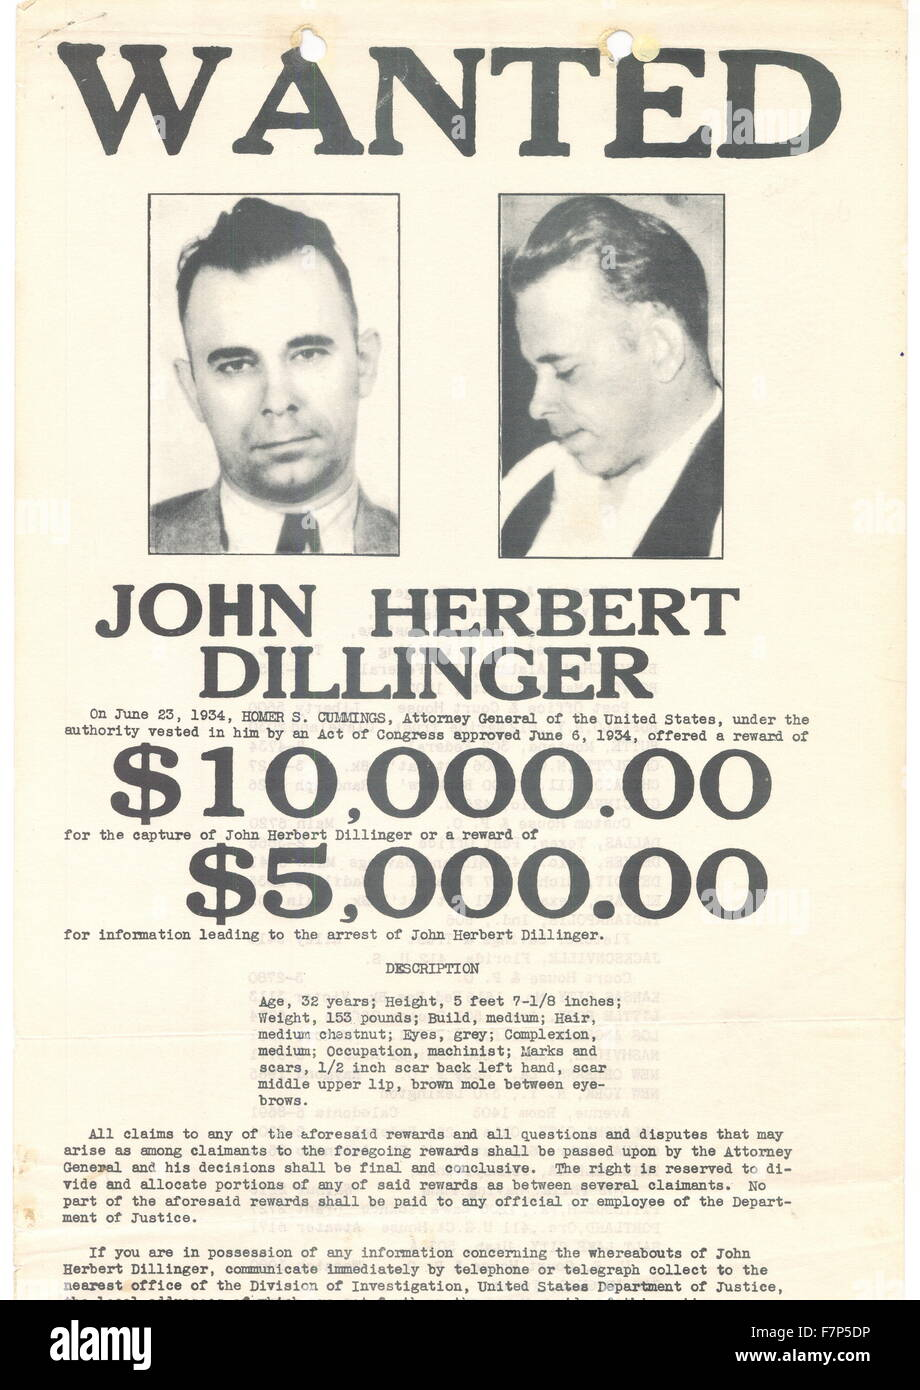 Superb Wanted Poster For John Herbert Dillinger (1903 1934) American Gangster In  The Depression Era United States. Dated 1934  Criminal Wanted Poster